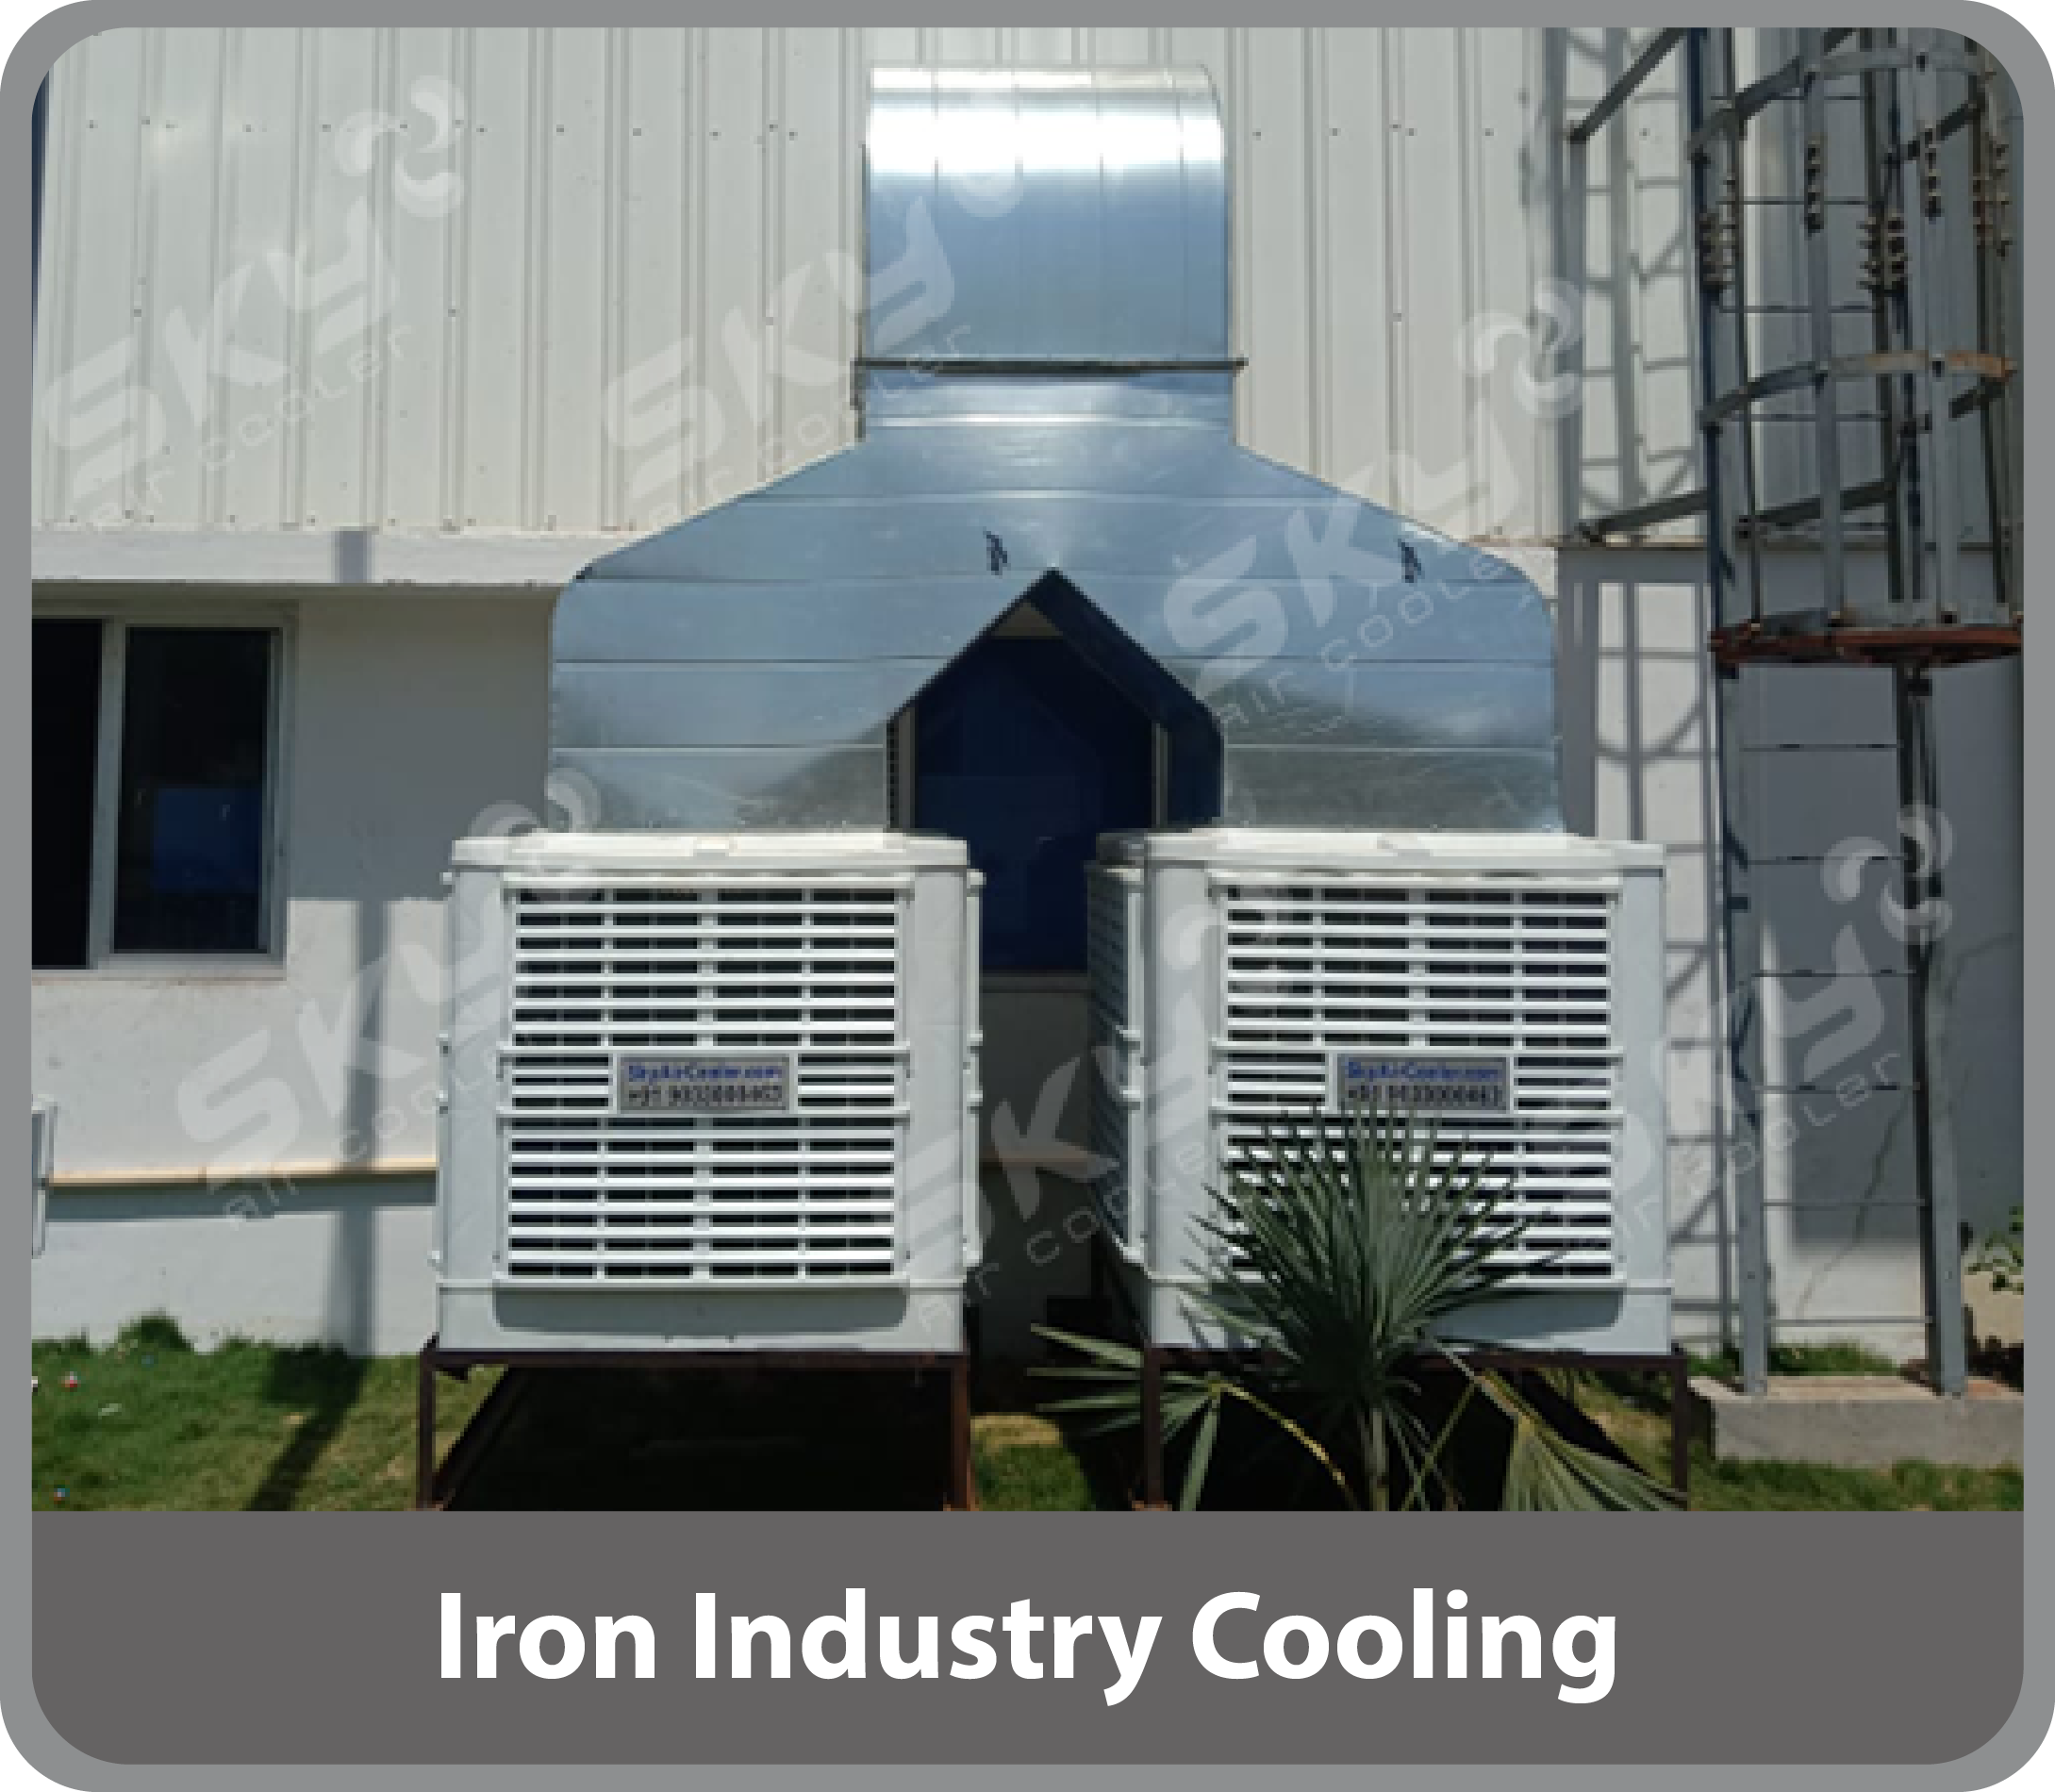 Iron Industry Cooling